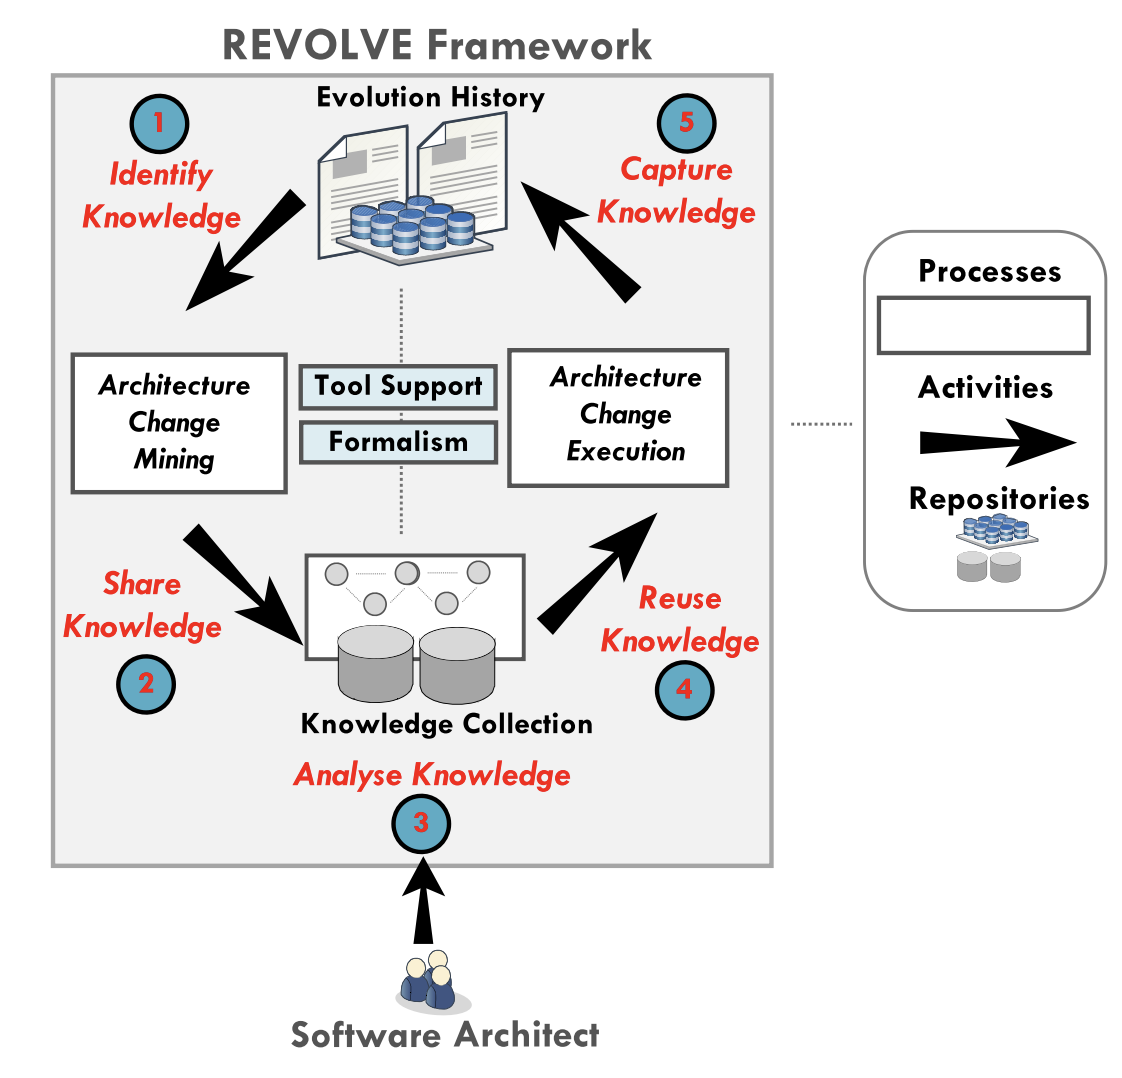 architecture-evolution-reuse-knowledge